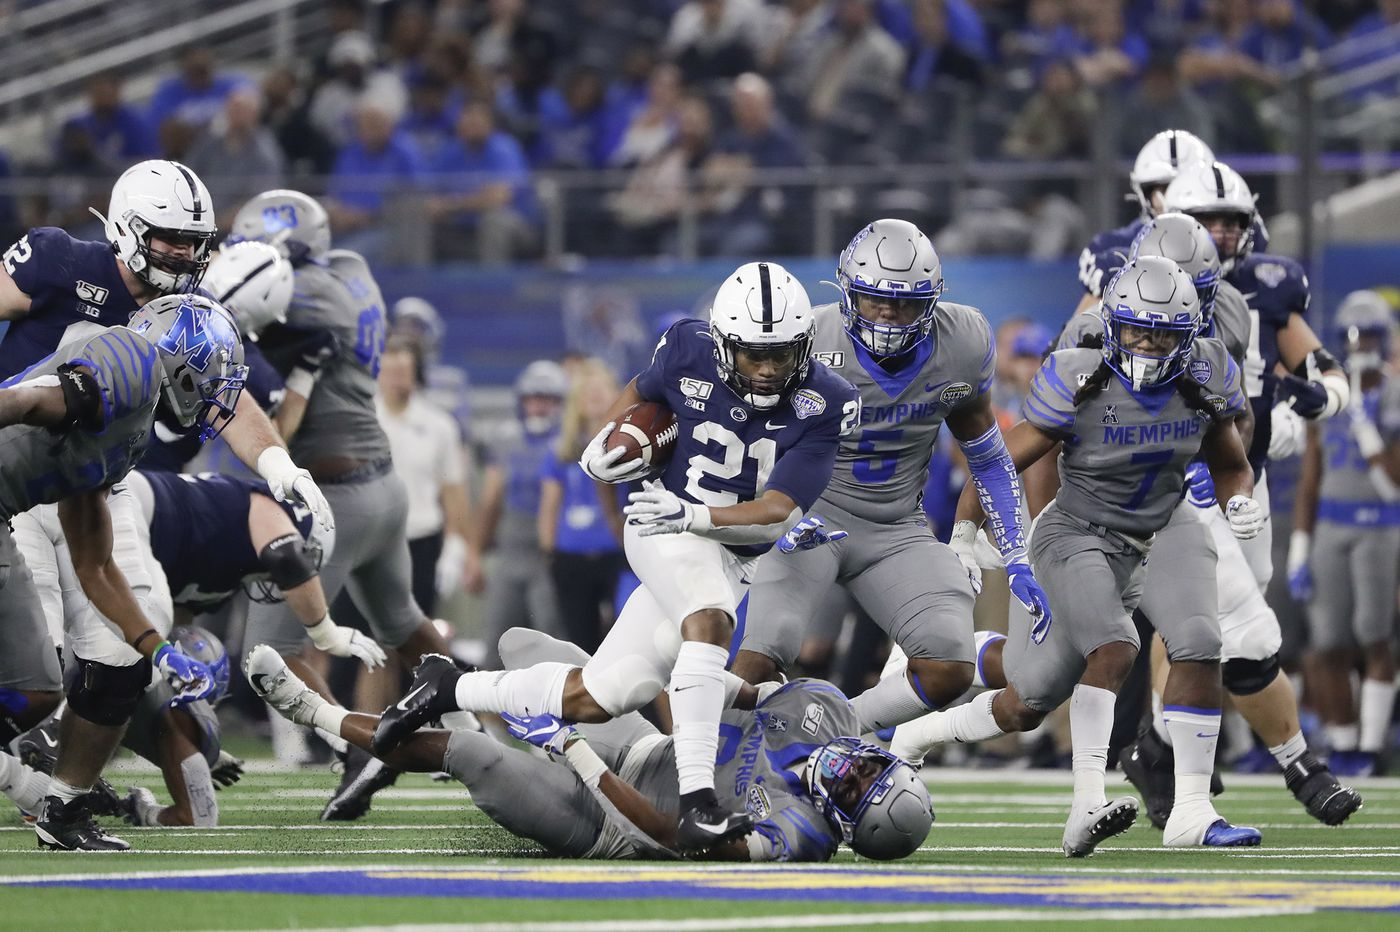 Penn State running back Noah Cain has seen for himself how seriously people need to take COVID-19